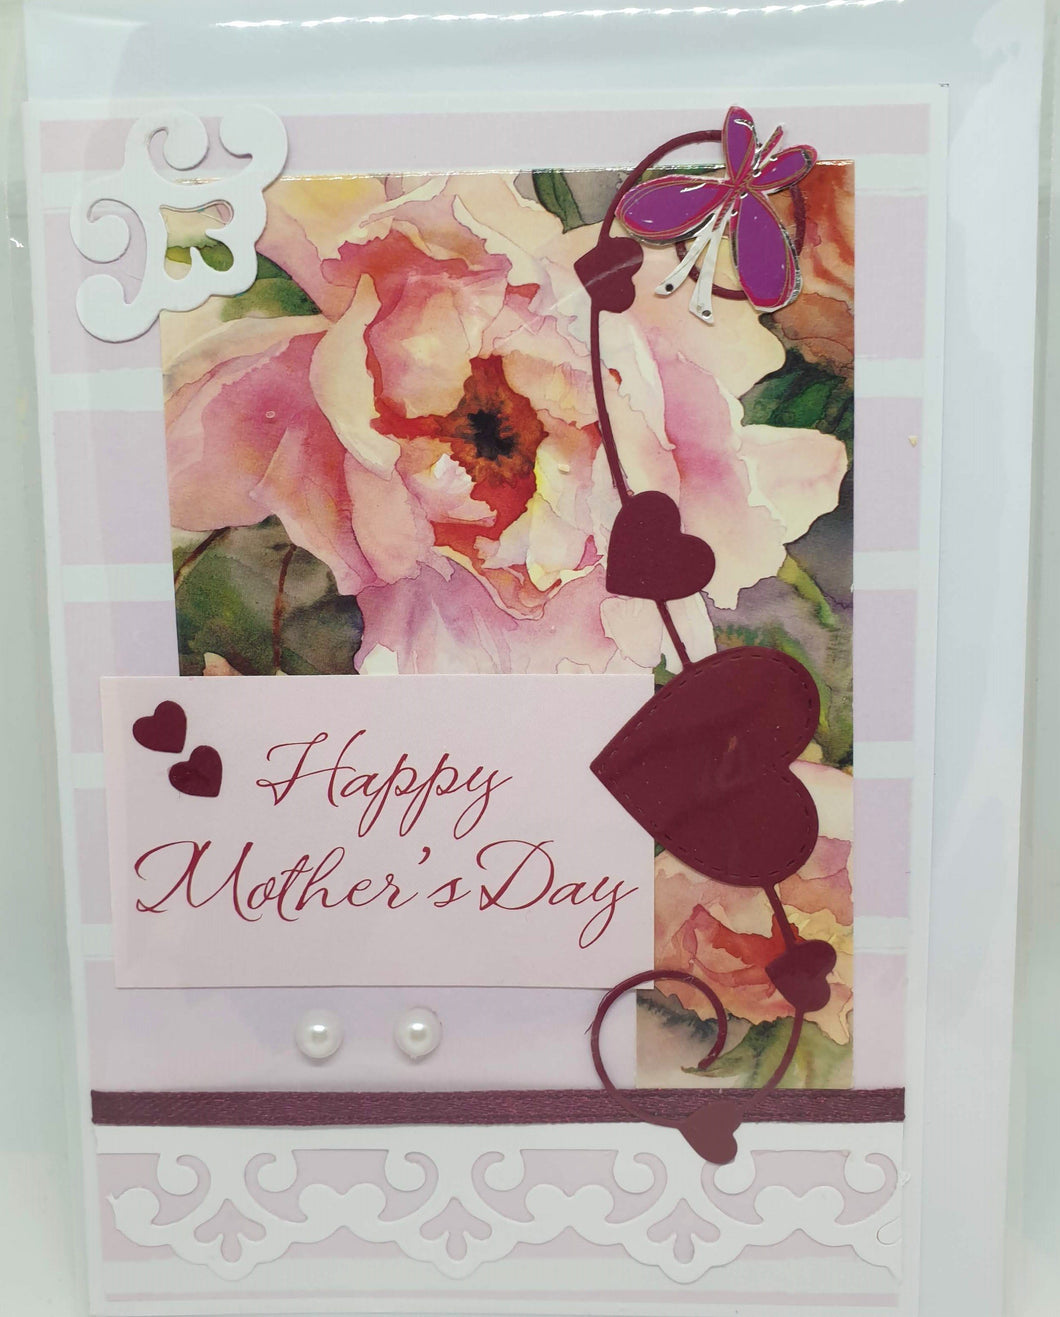 Handmade Mother's Day Cards - Happy Mother's Day-Homewares-Atelier Crafers